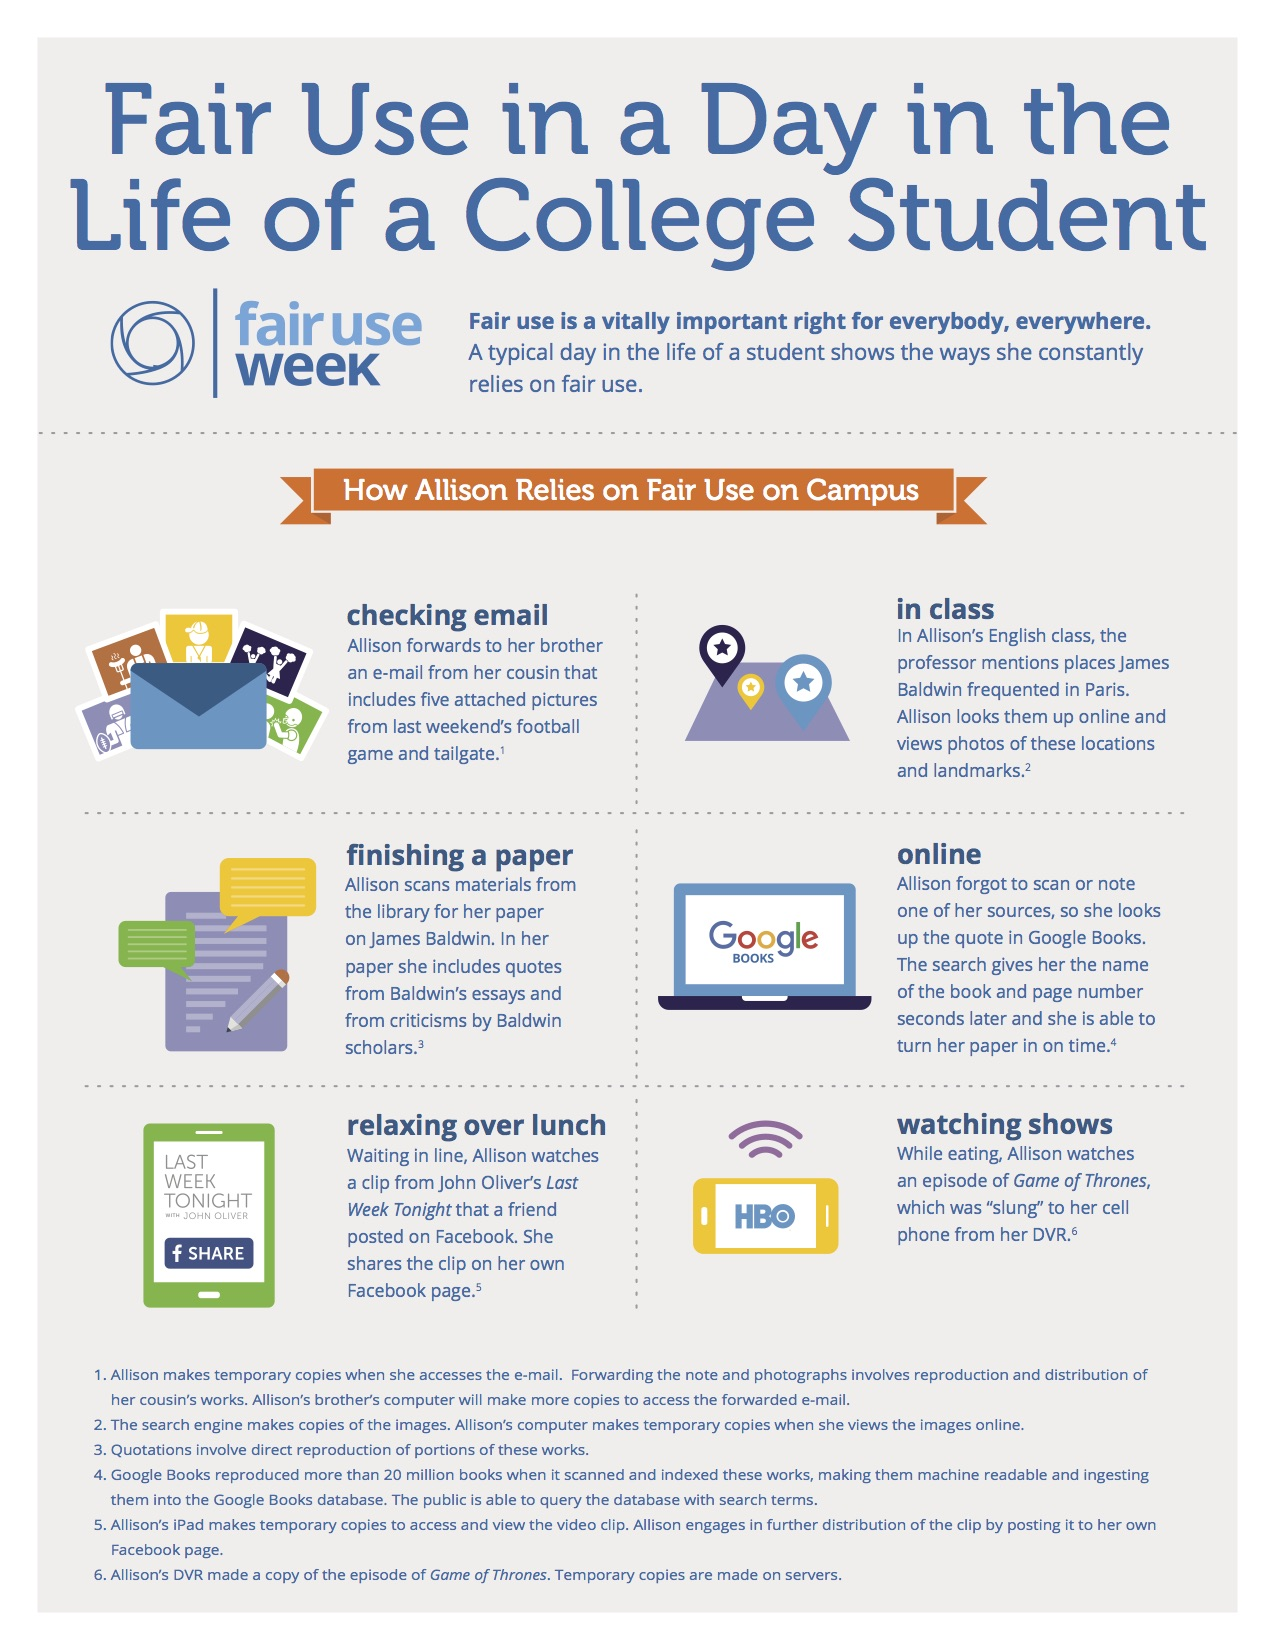 fair-use-in-a-day-in-the-life-of-a-college-student-infographic-feb2016 1